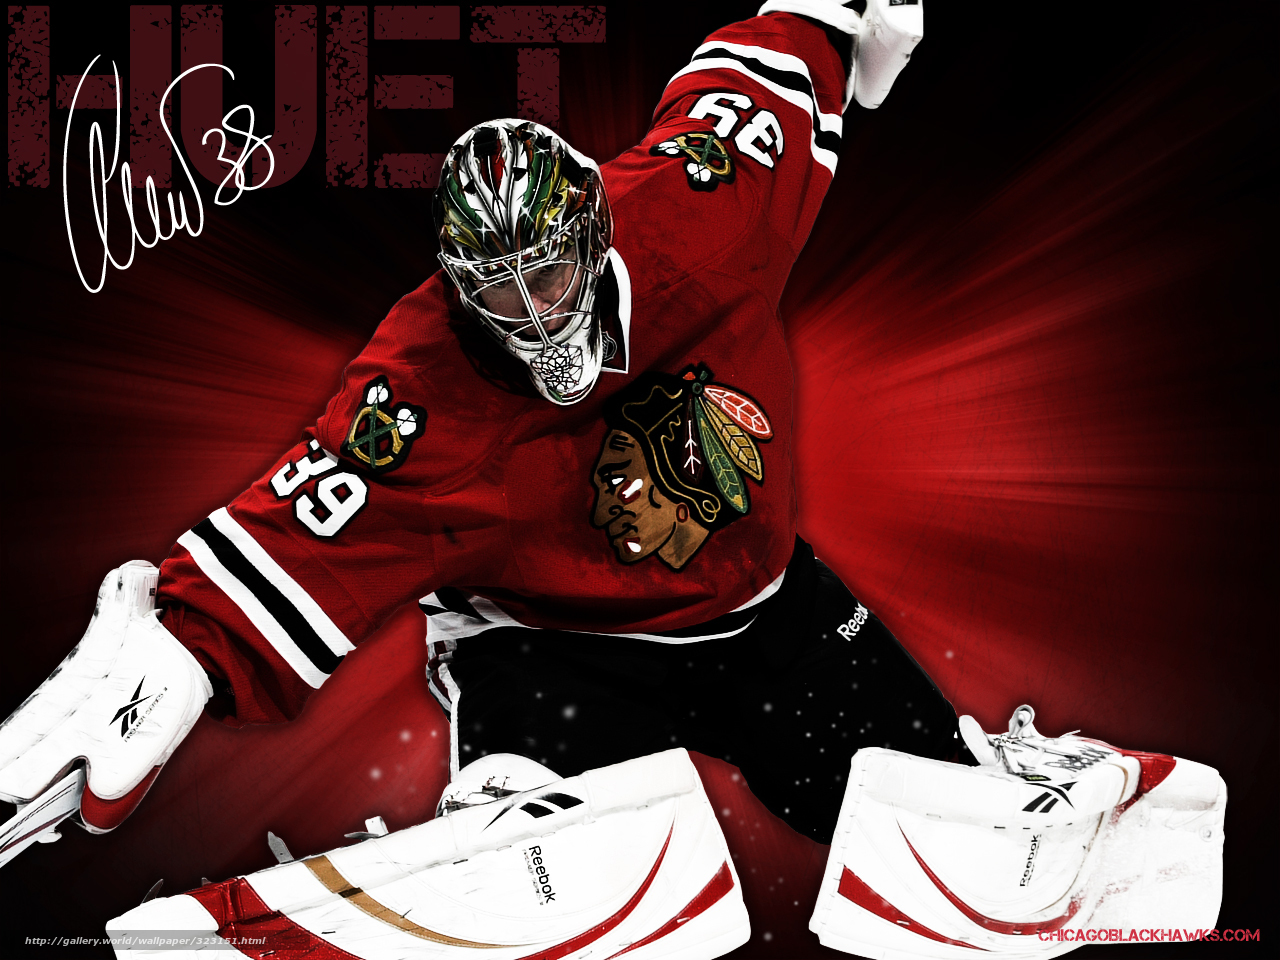 Download wallpaper sport hockey NHL desktop wallpaper in the 1280x960